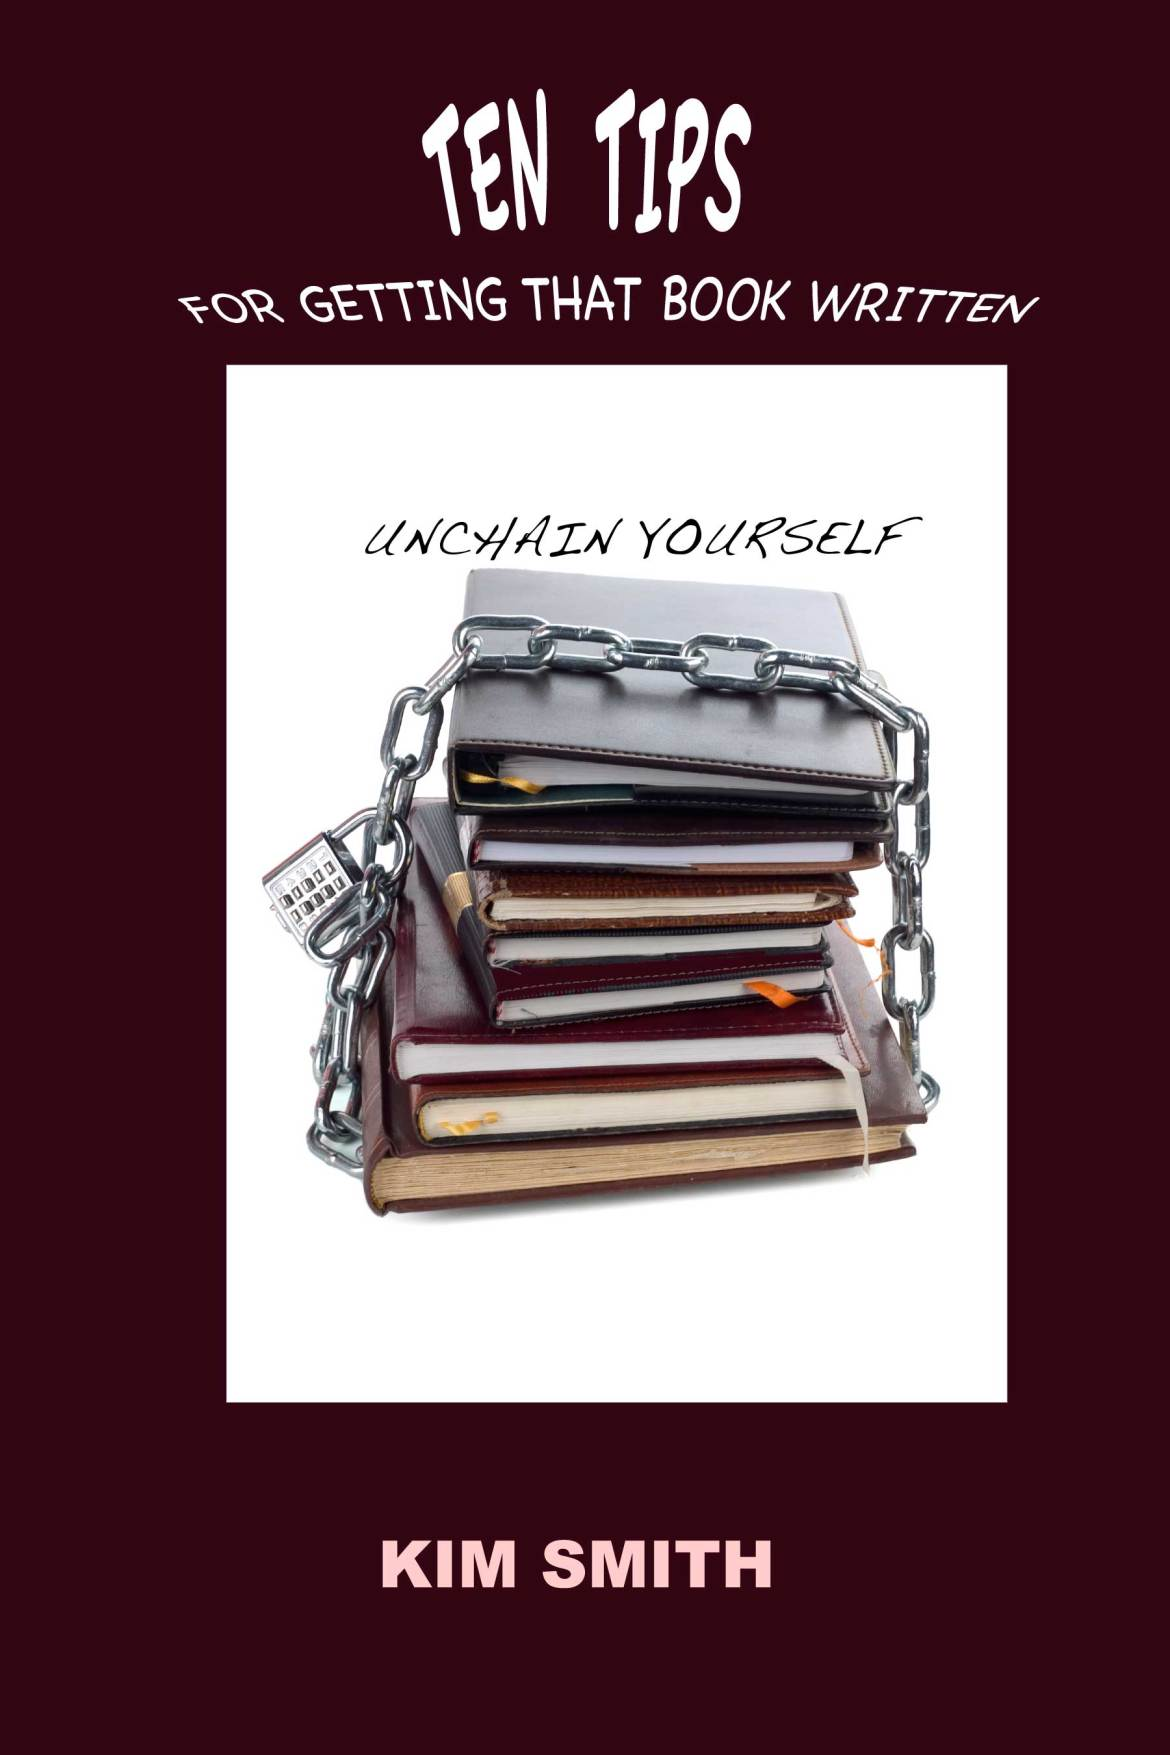 Ten Tips for Getting that Book Written